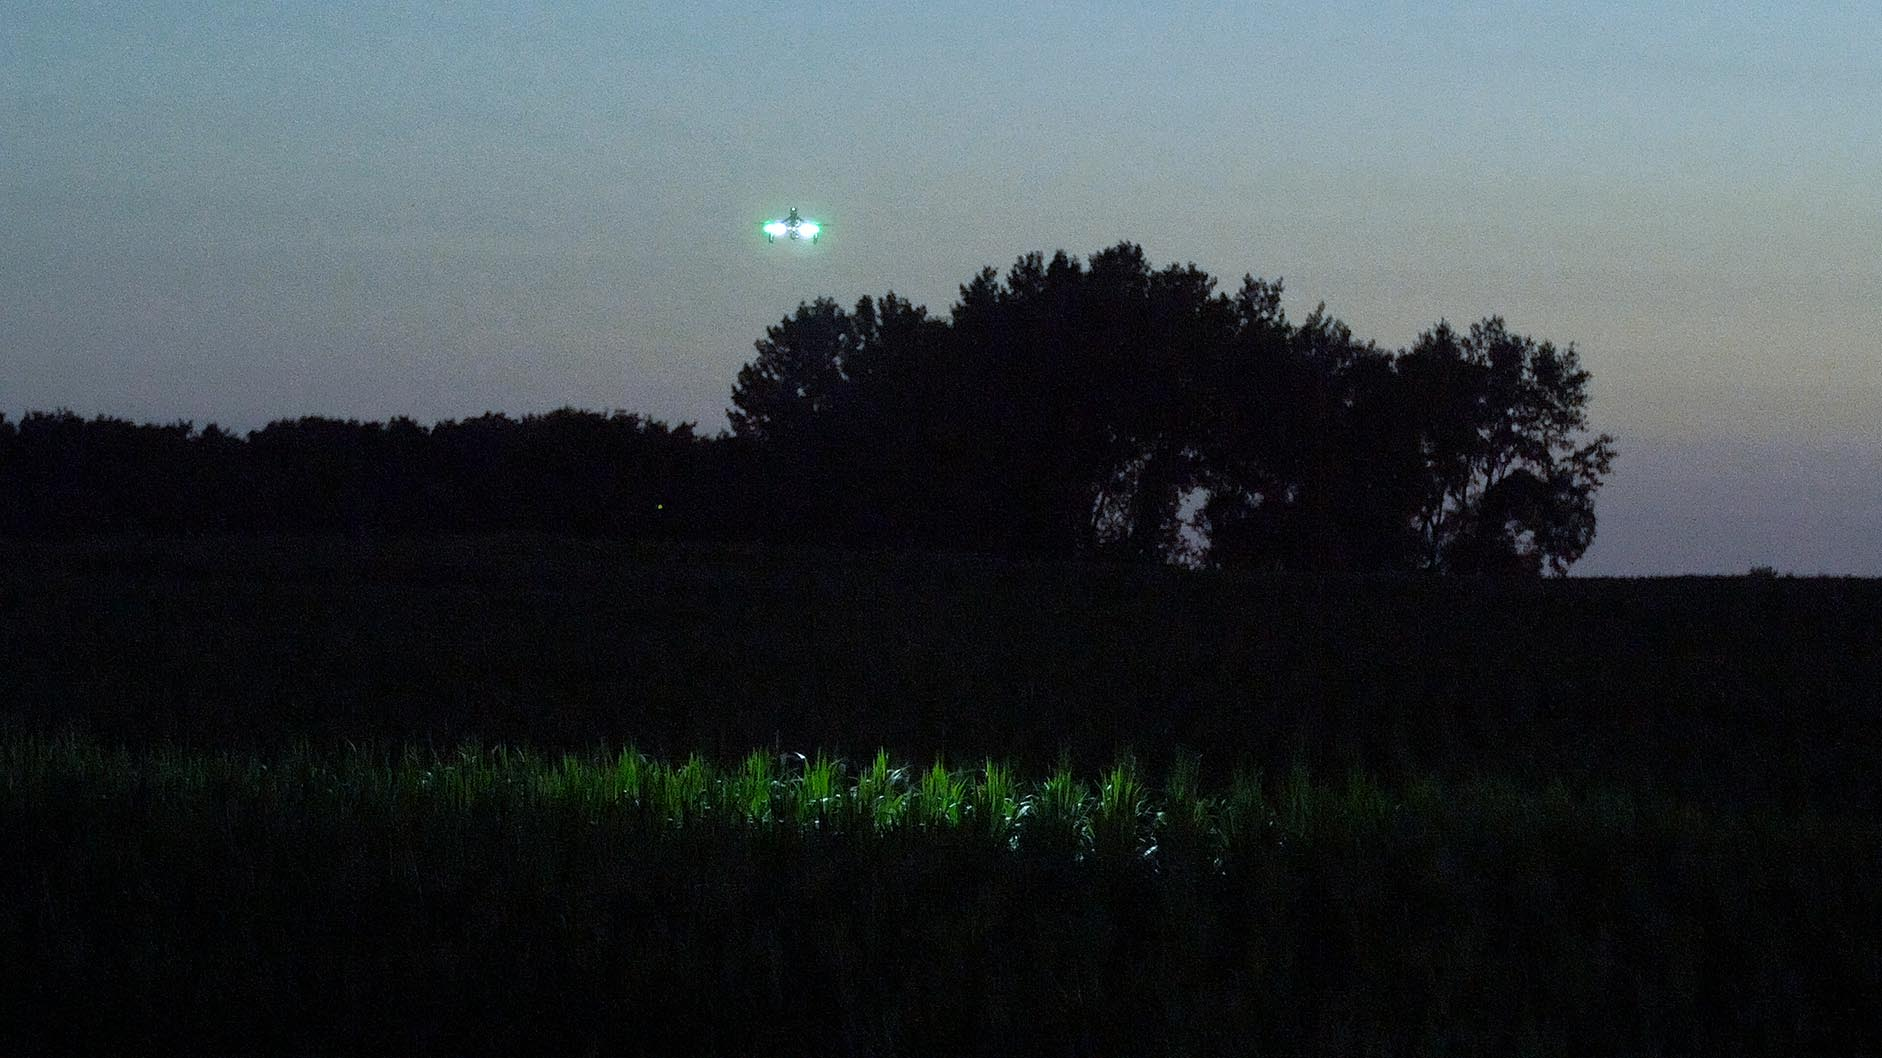 Drone equipped with 2 FoxFury Rugo R1S lights is used to show location of suspect in corn field